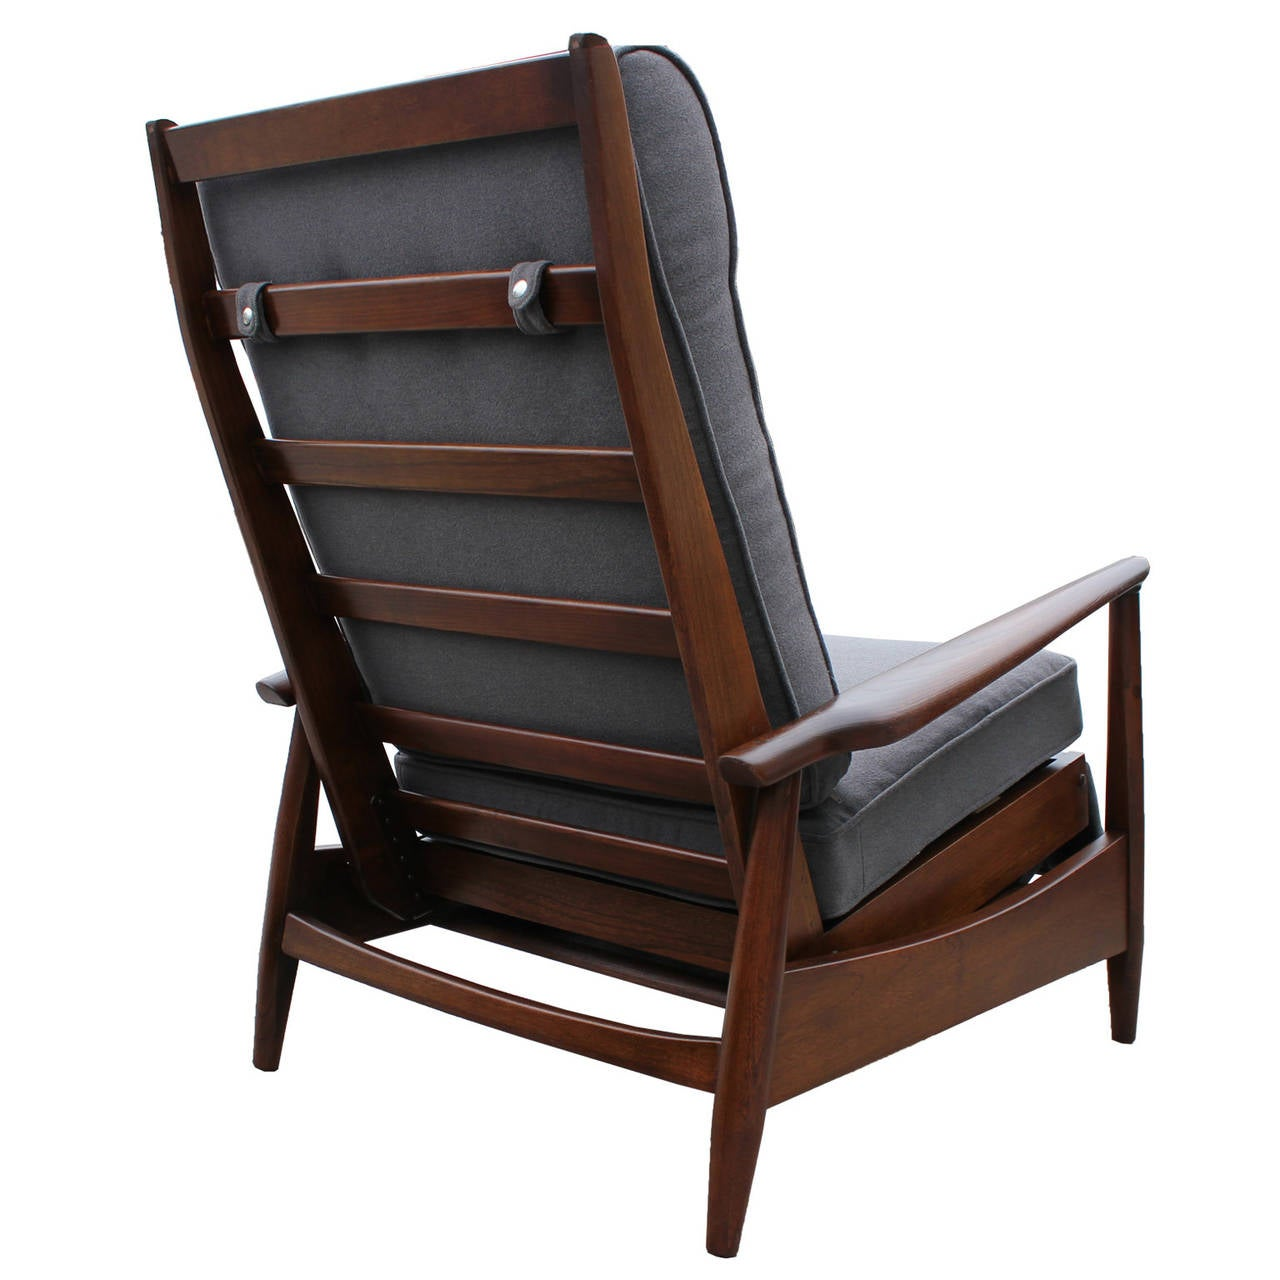 swedish leather recliner chairs kd smart chair reviews scandinavian reclining lounge at 1stdibs